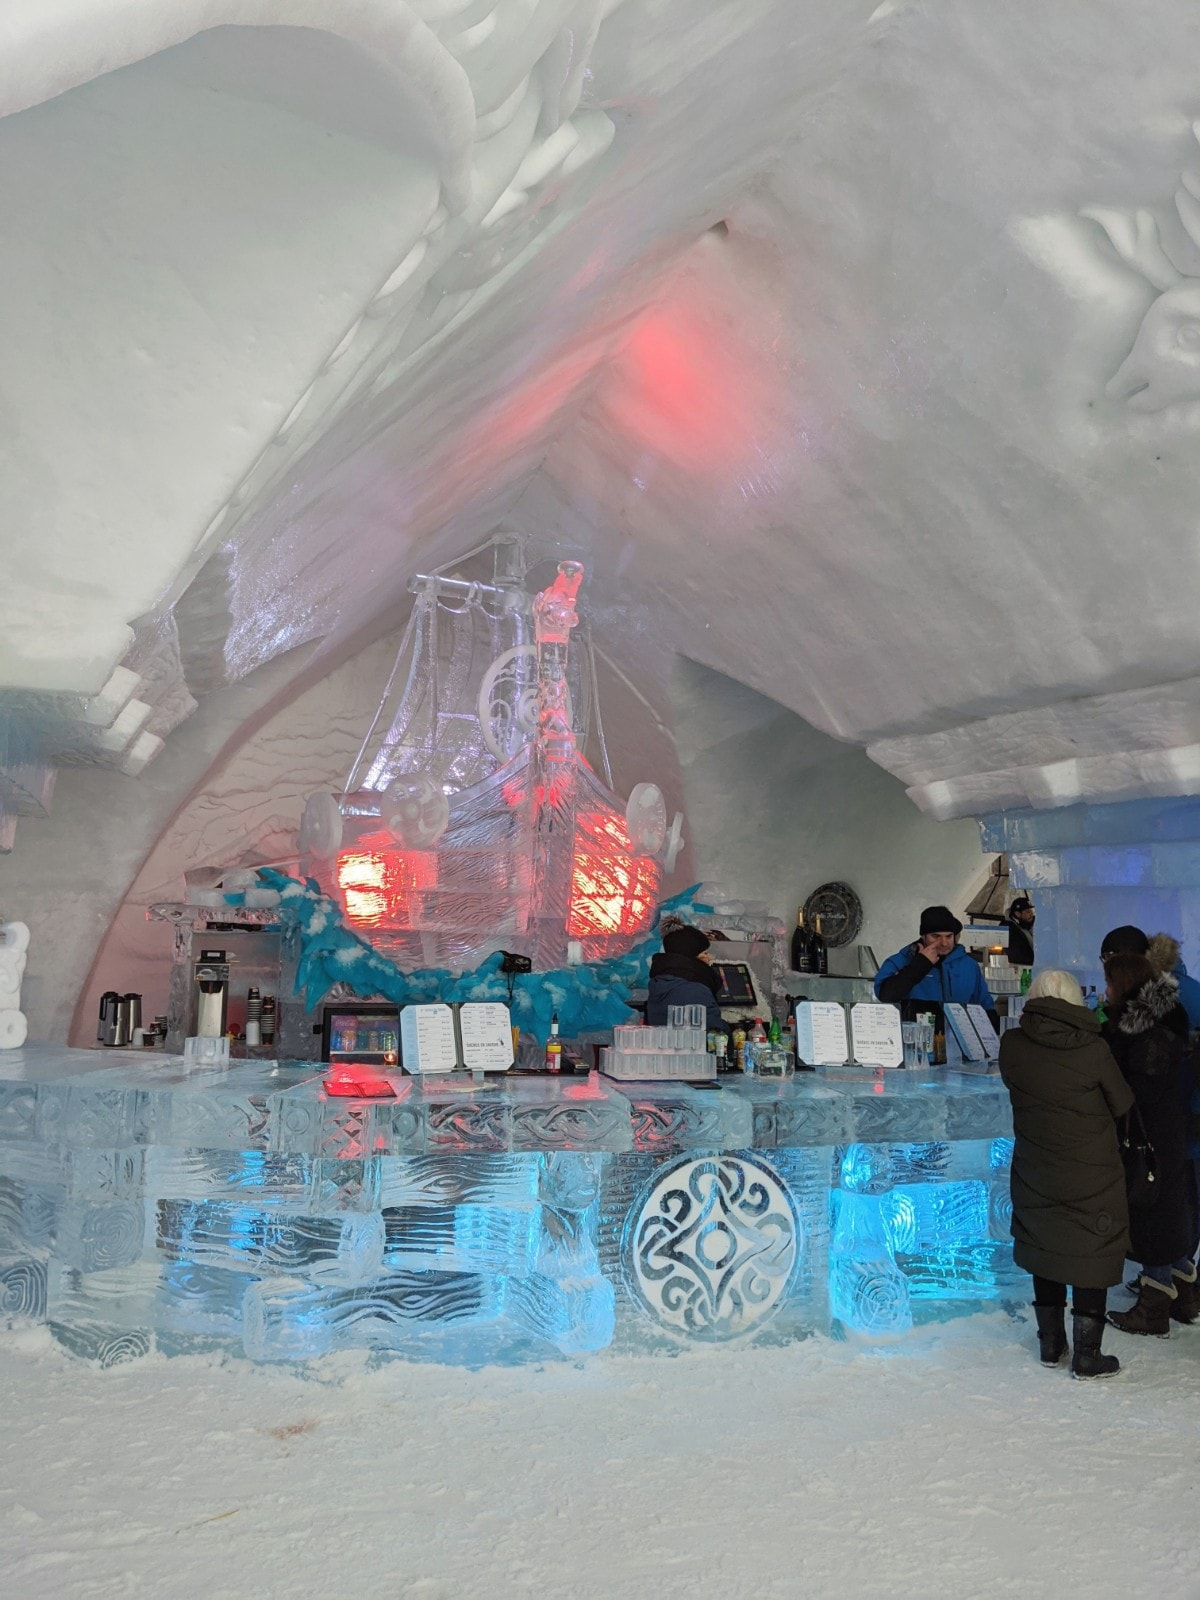 The bar made of ice